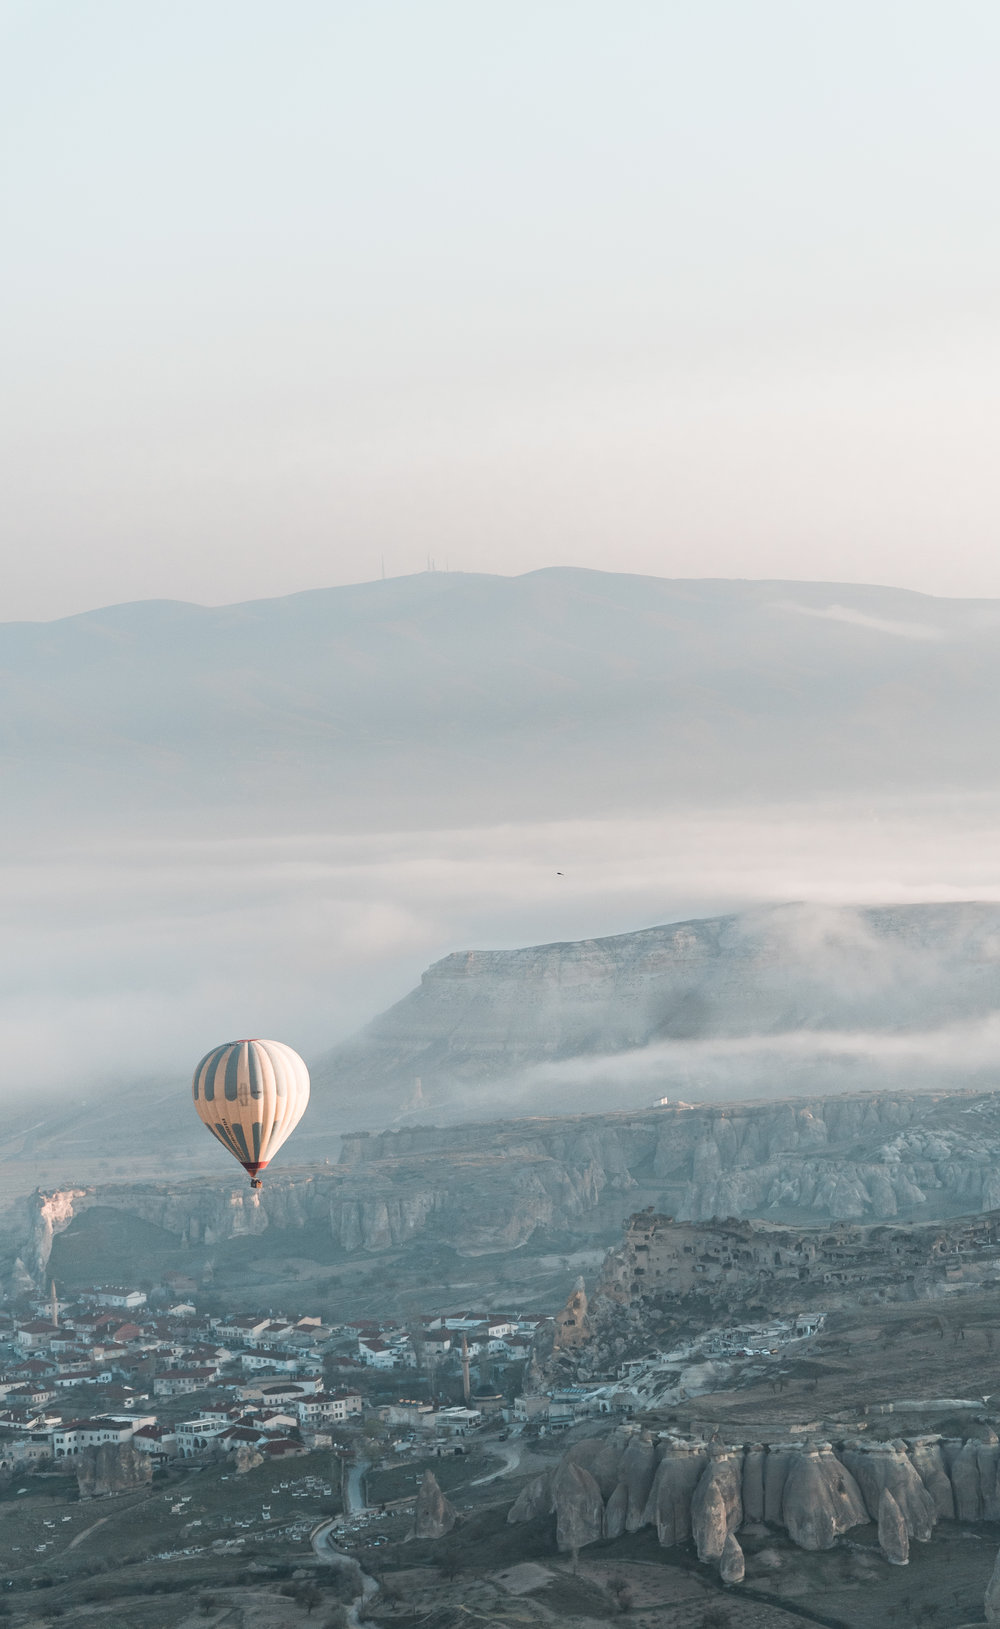 Magical Cappadocia - Hot Air Balloon Journey